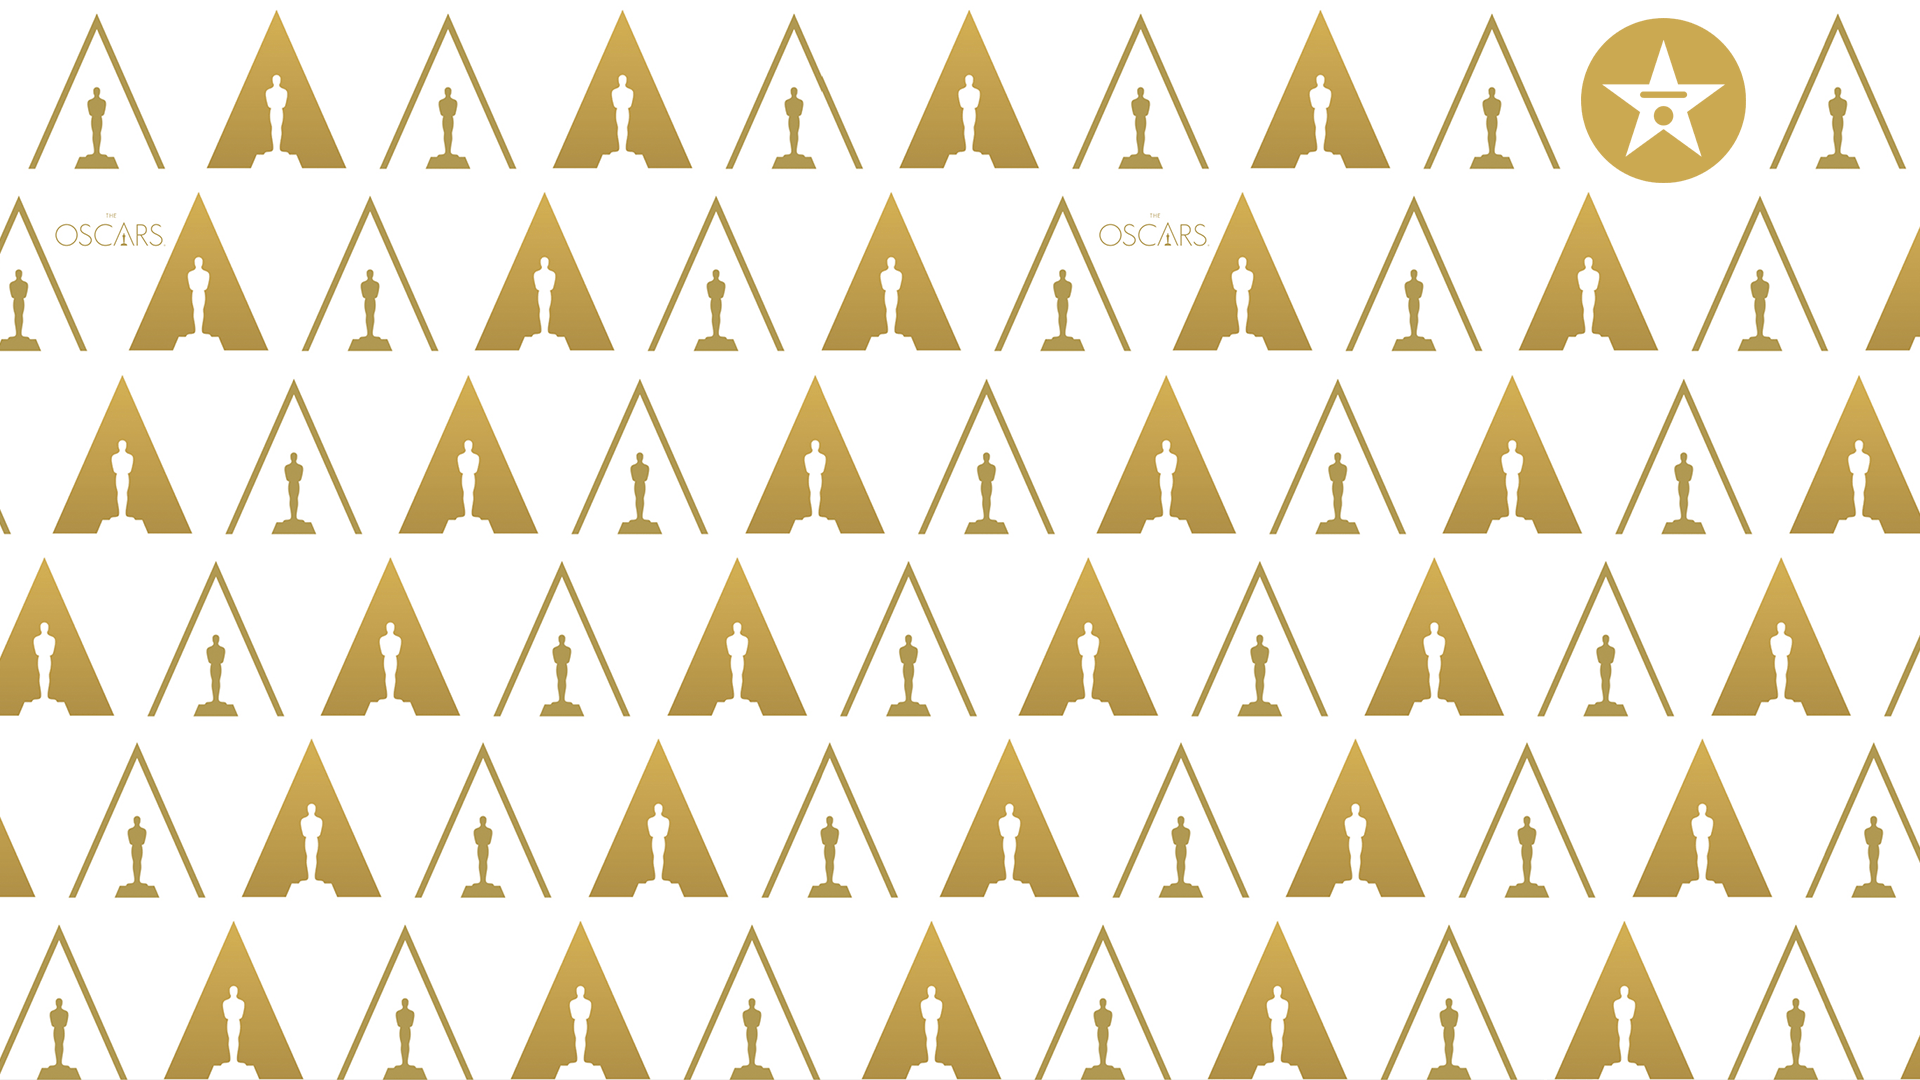 oscars graphic zoom background